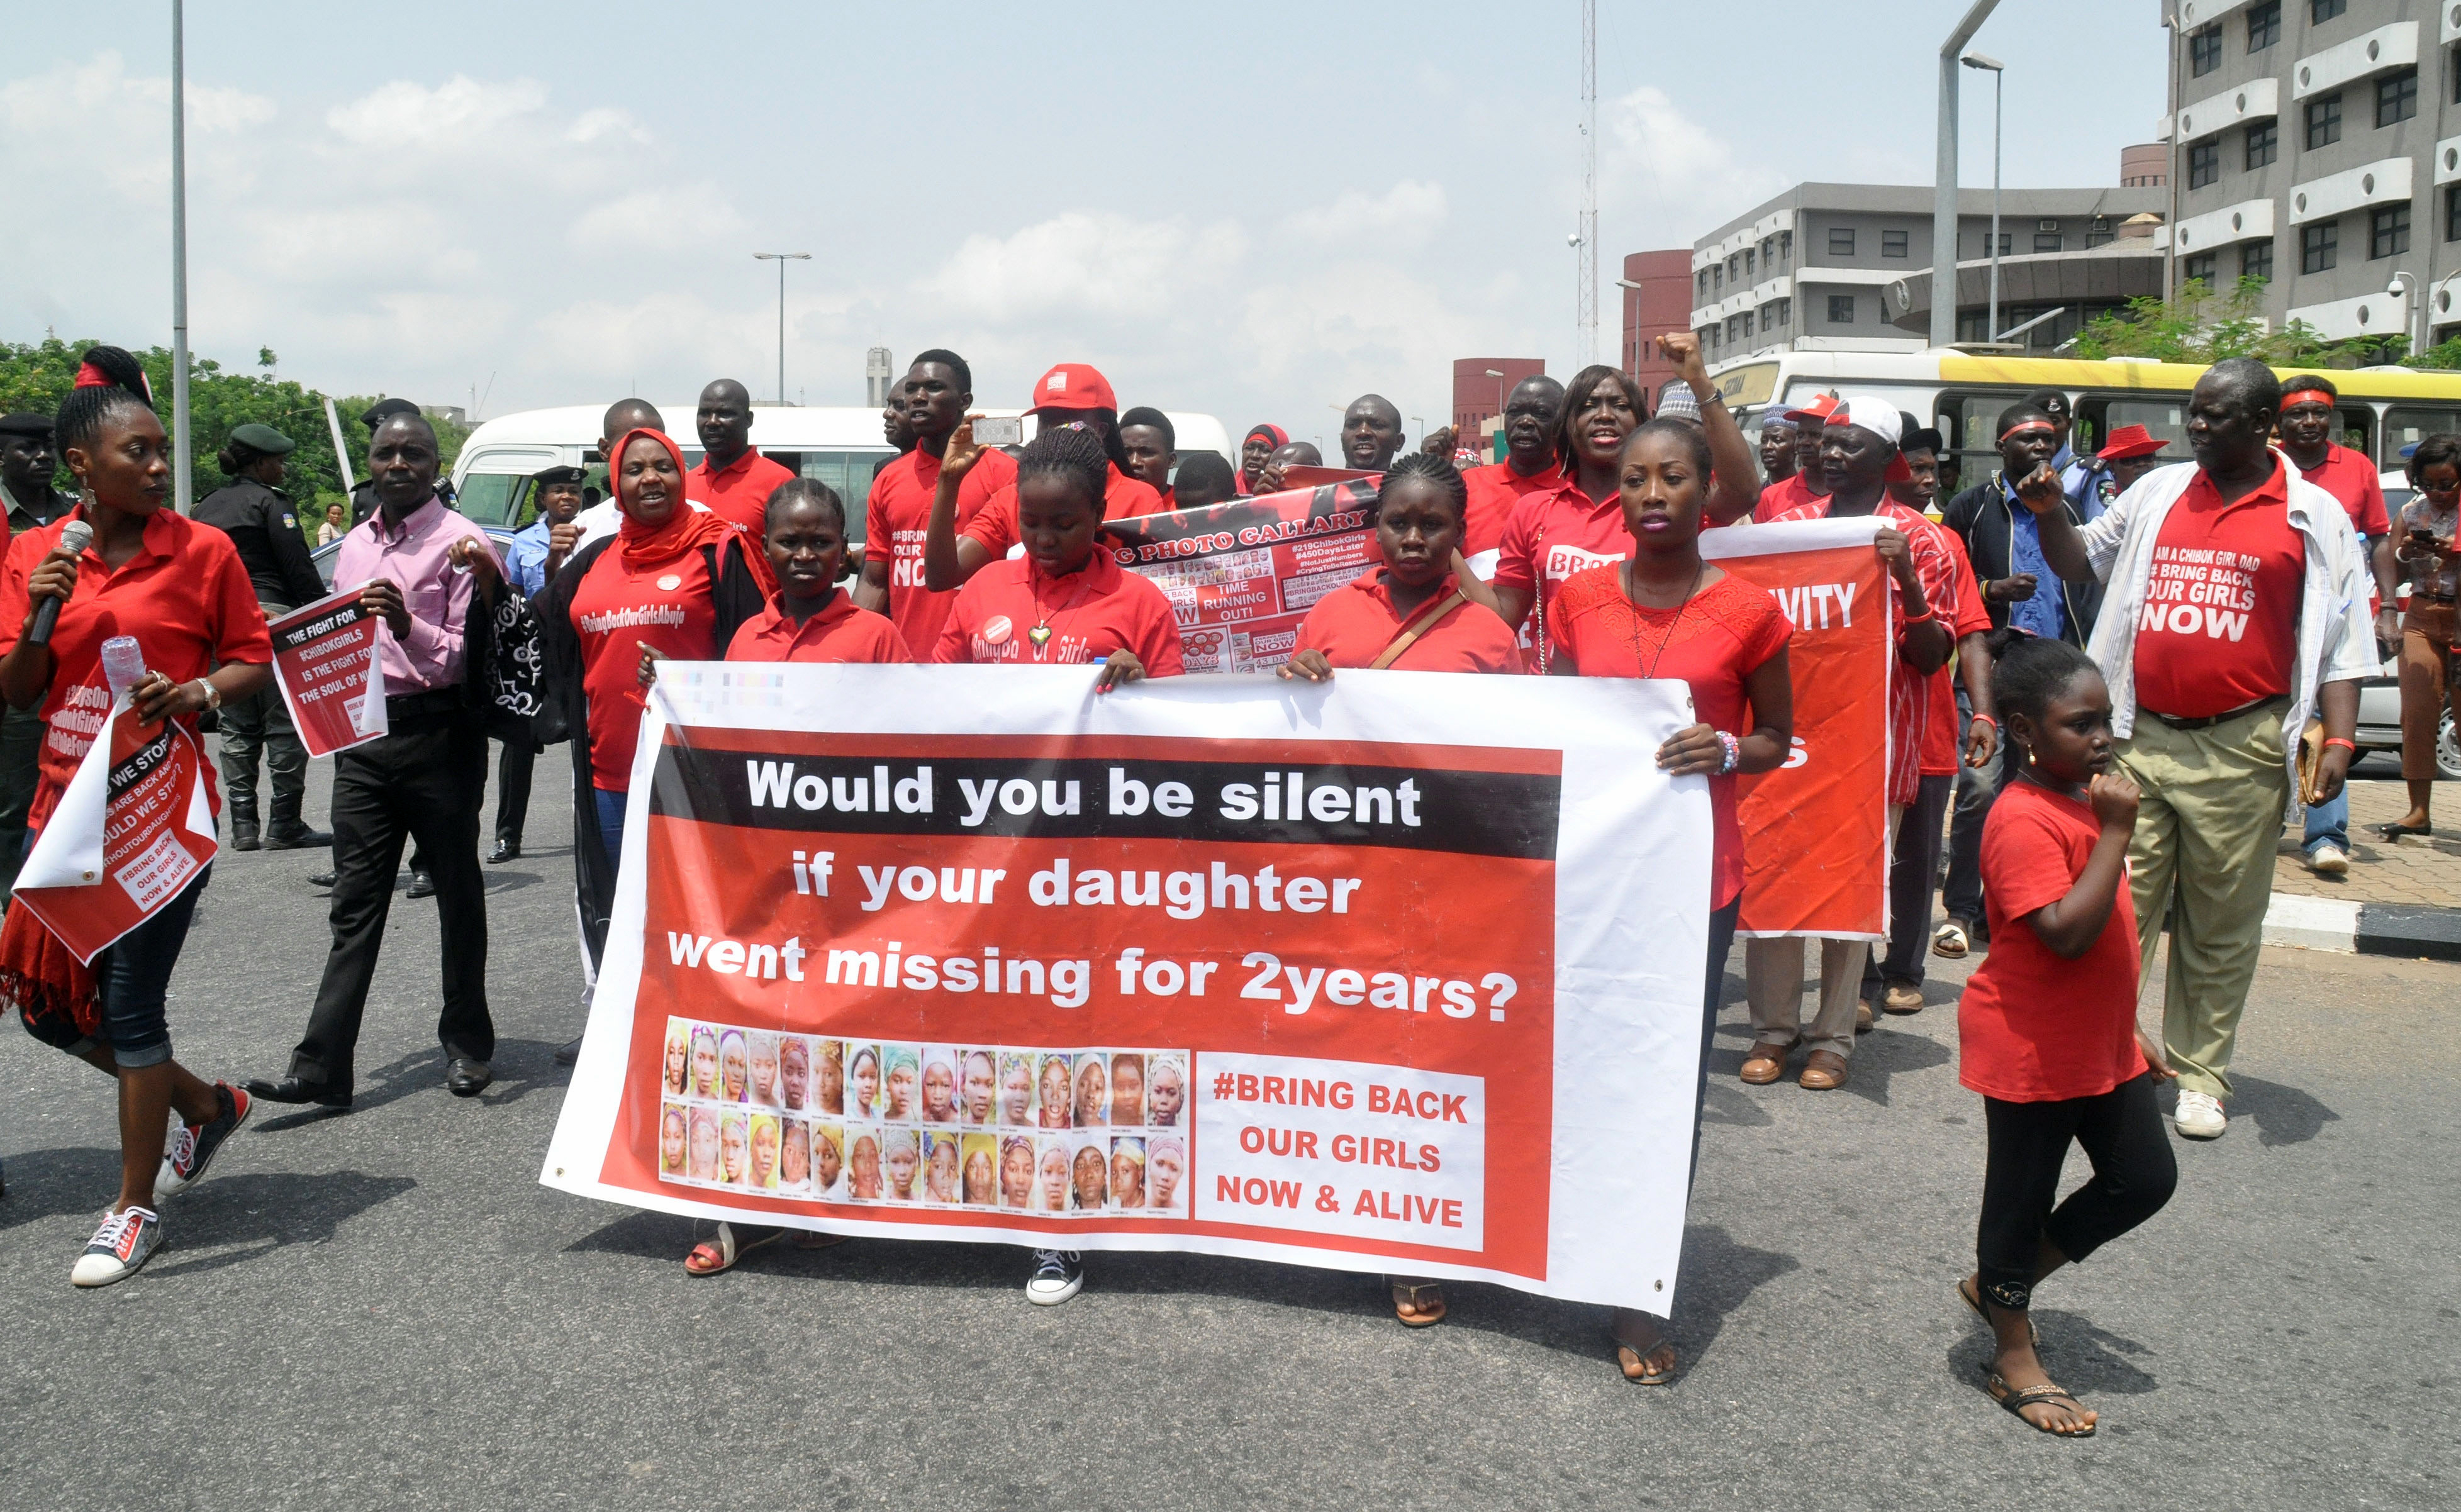 People march during a protest calling on the government to rescue the kidnapped girls of the government secondary school who were abducted two years ago, in Abuja, Nigeria on April 14, 2016.